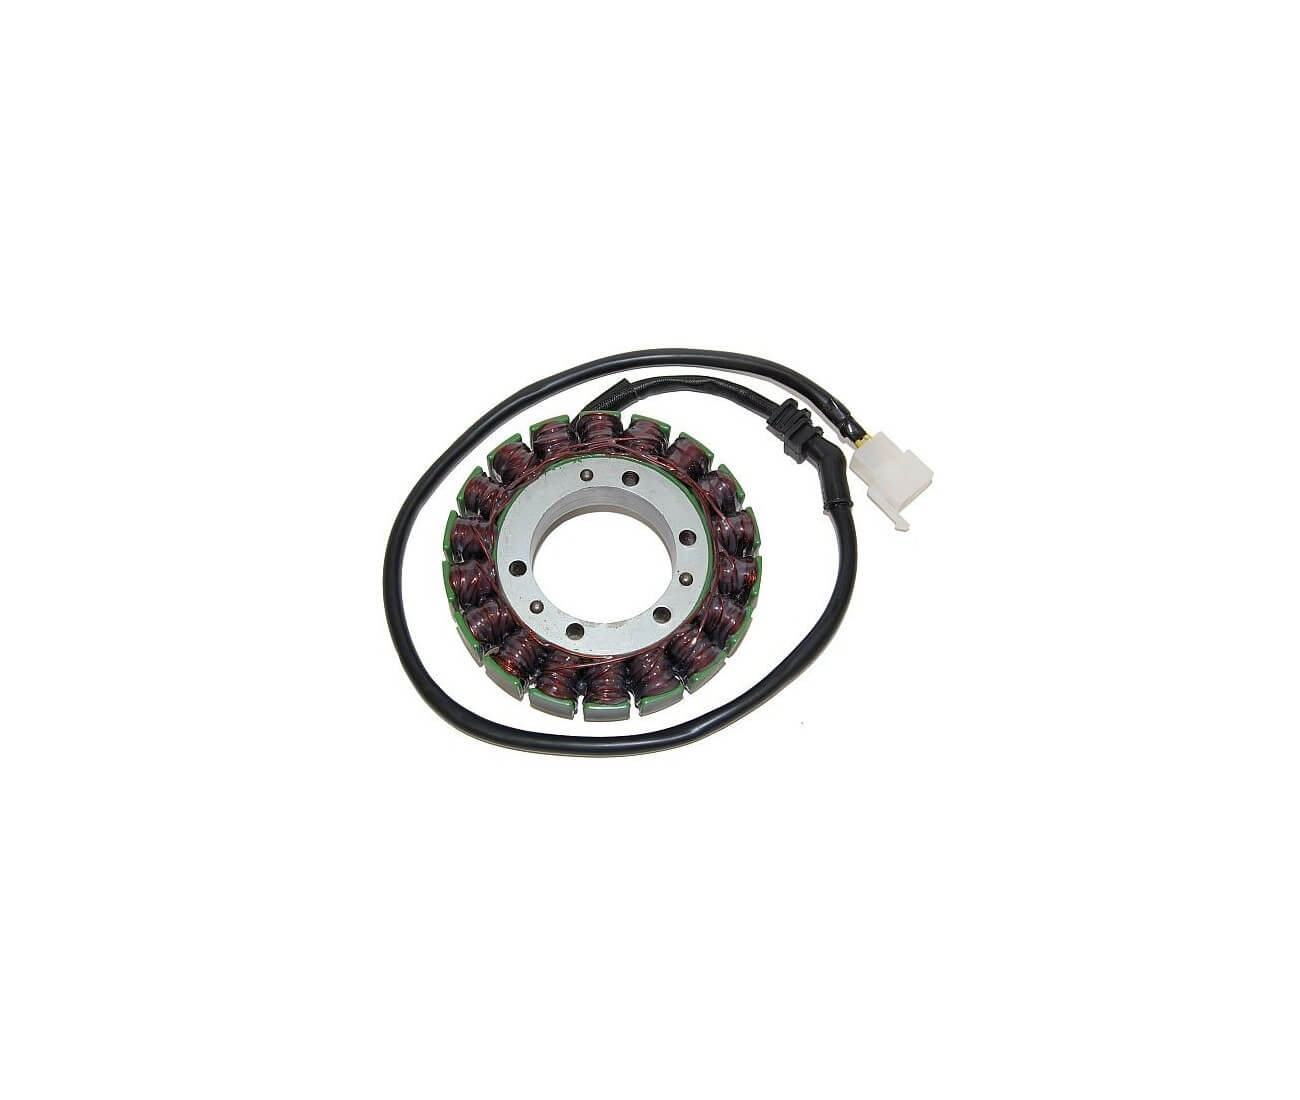 HONDA VT 750 C SHADOW STATOR ALTERNATEUR NEUF HONDA VT 750